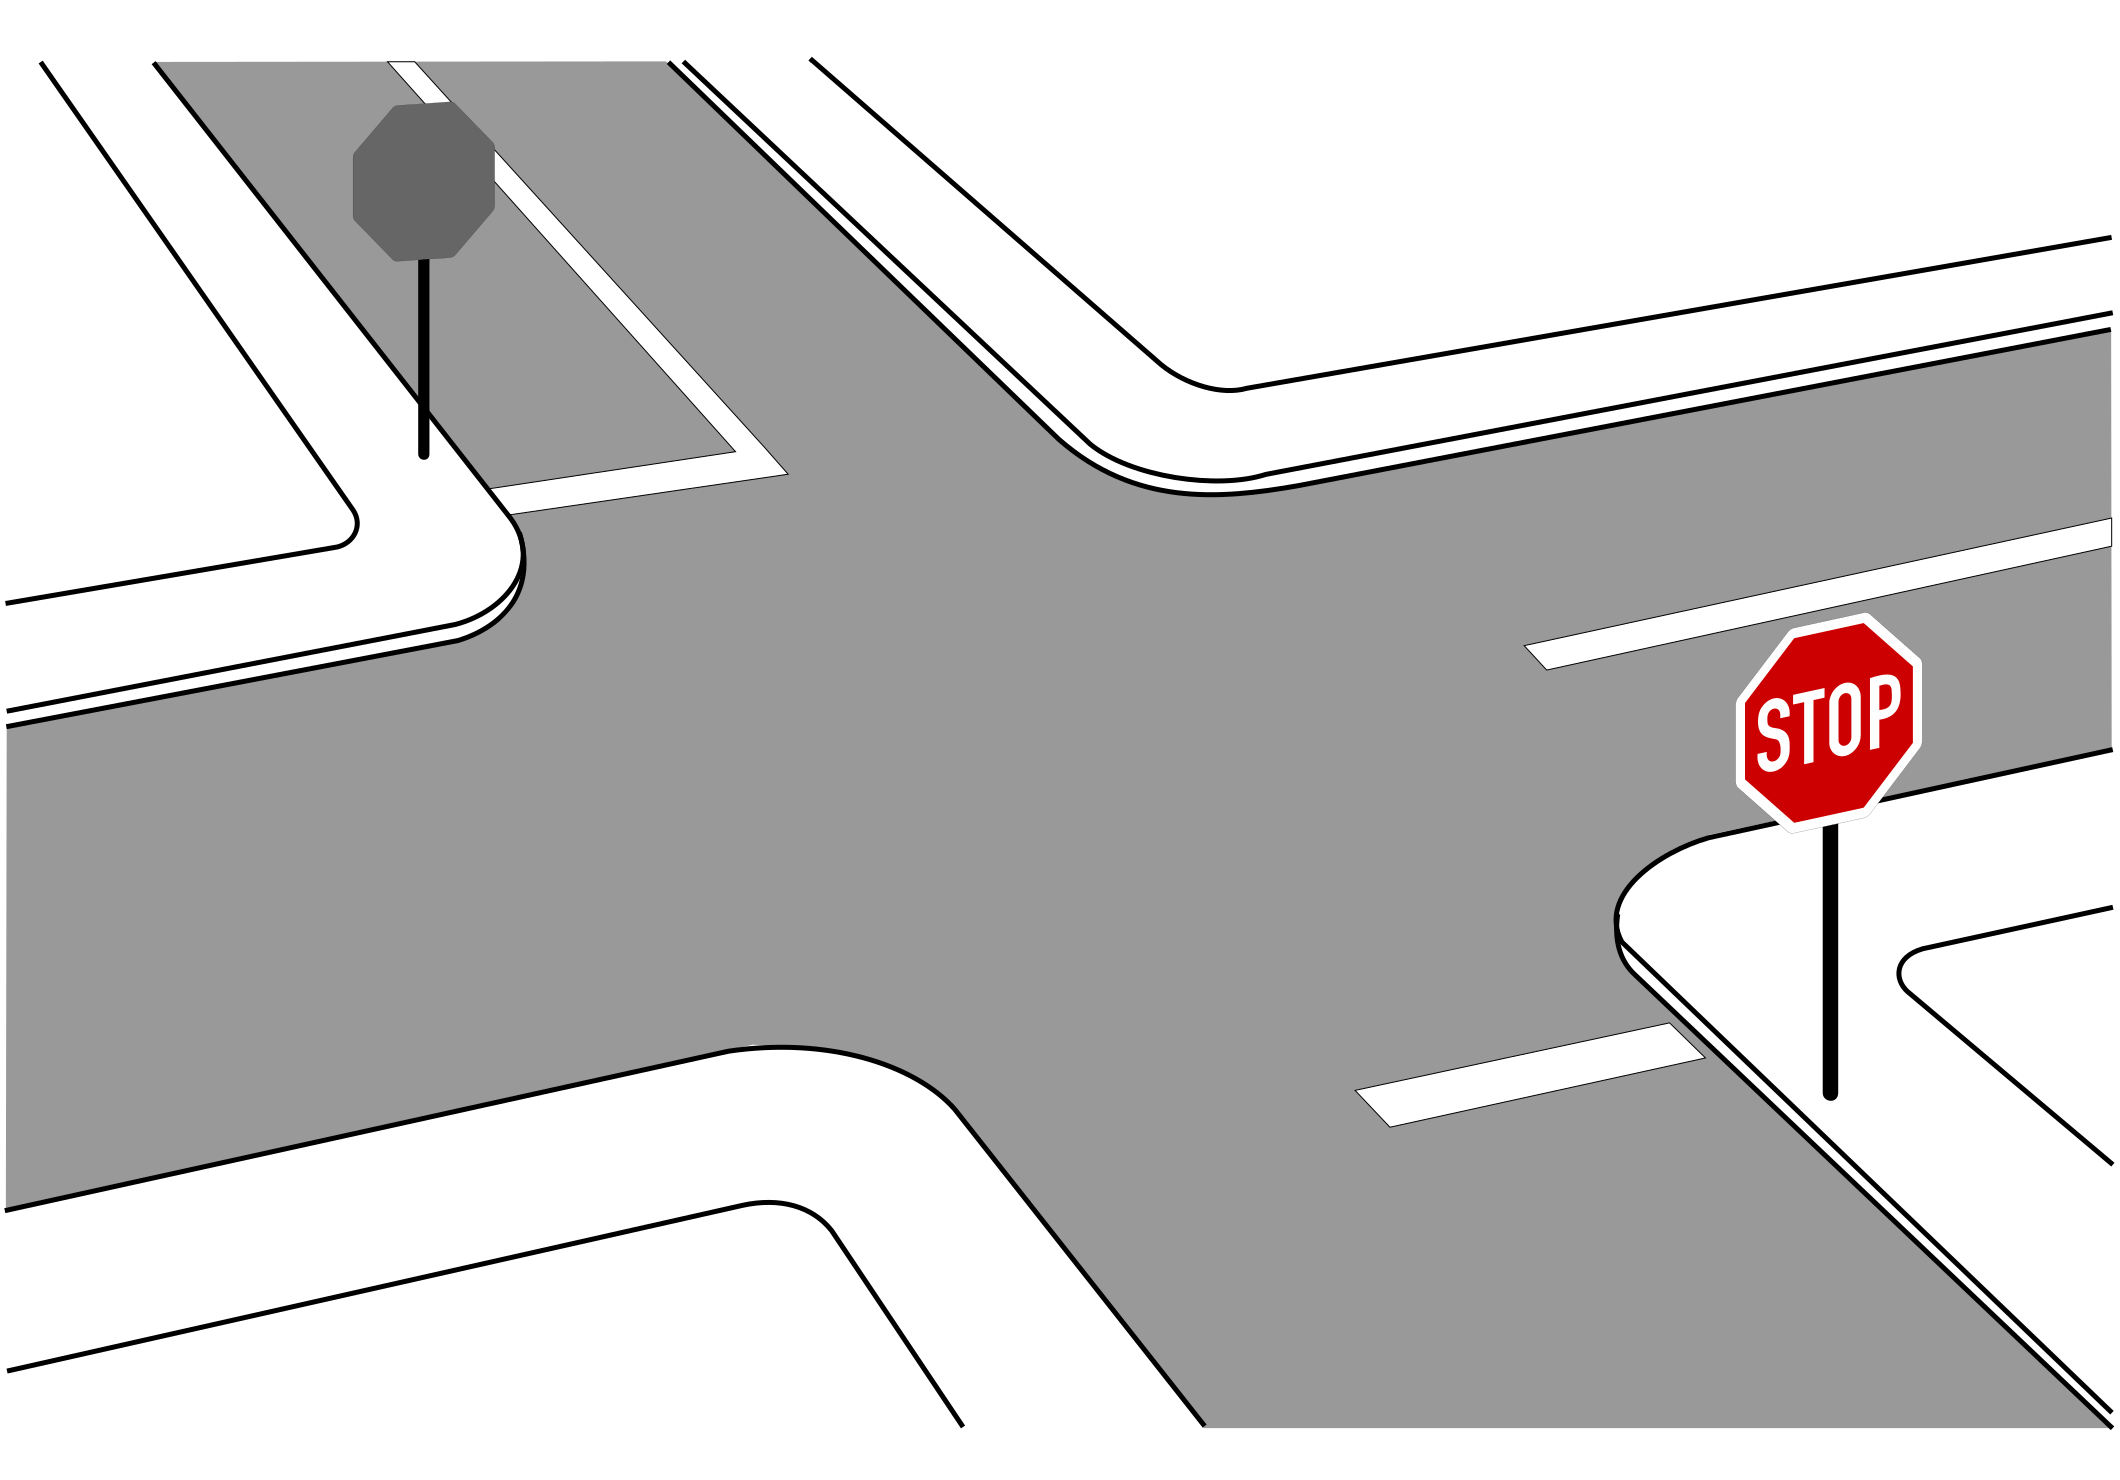 Open simulation interface osi. Clipart road intersection